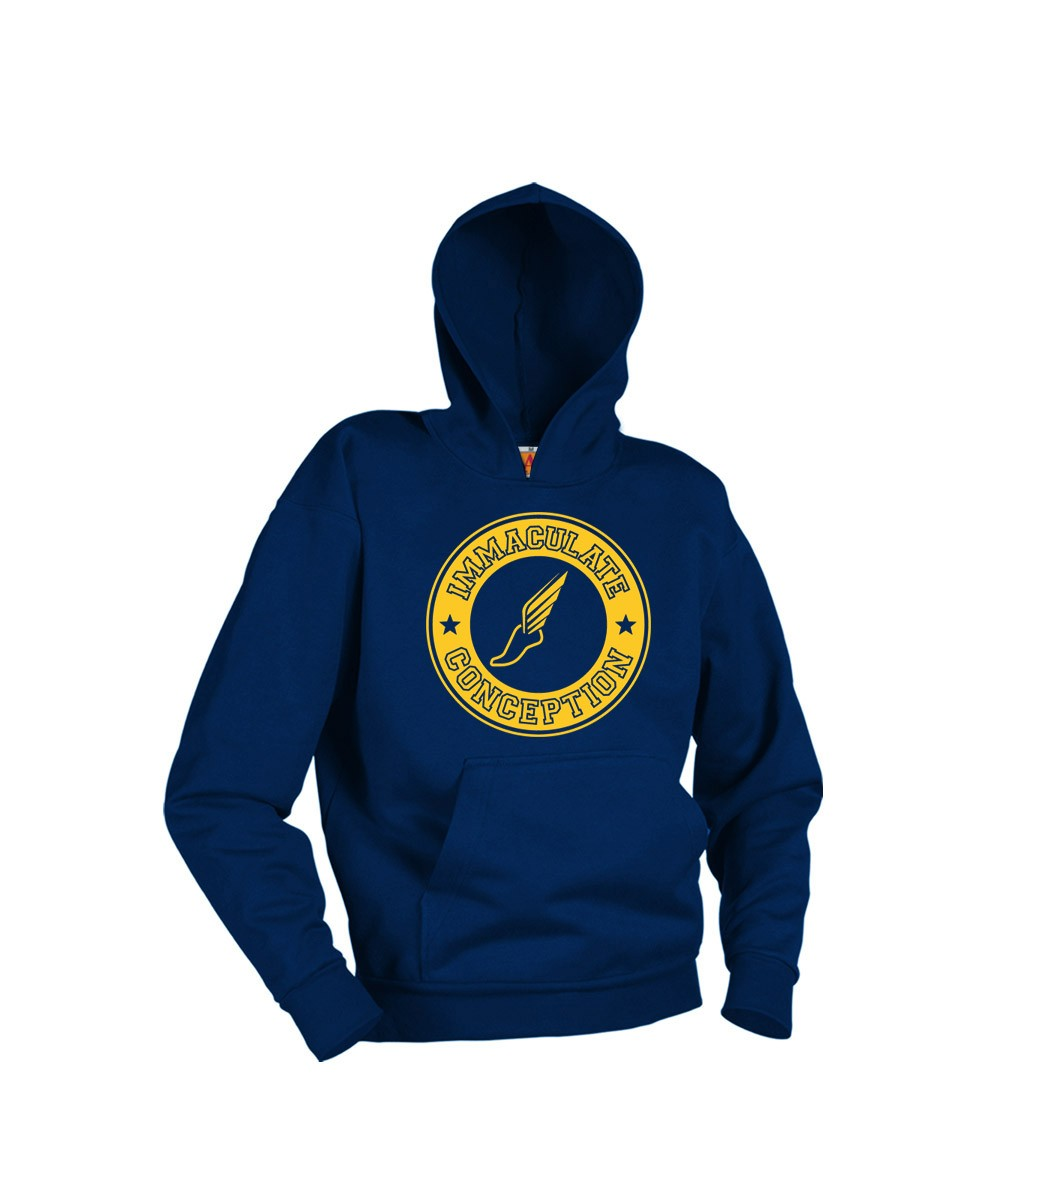 ICS Track Team Hoodie w/Logo & Name - Please Allow 2-4 Weeks for Delivery